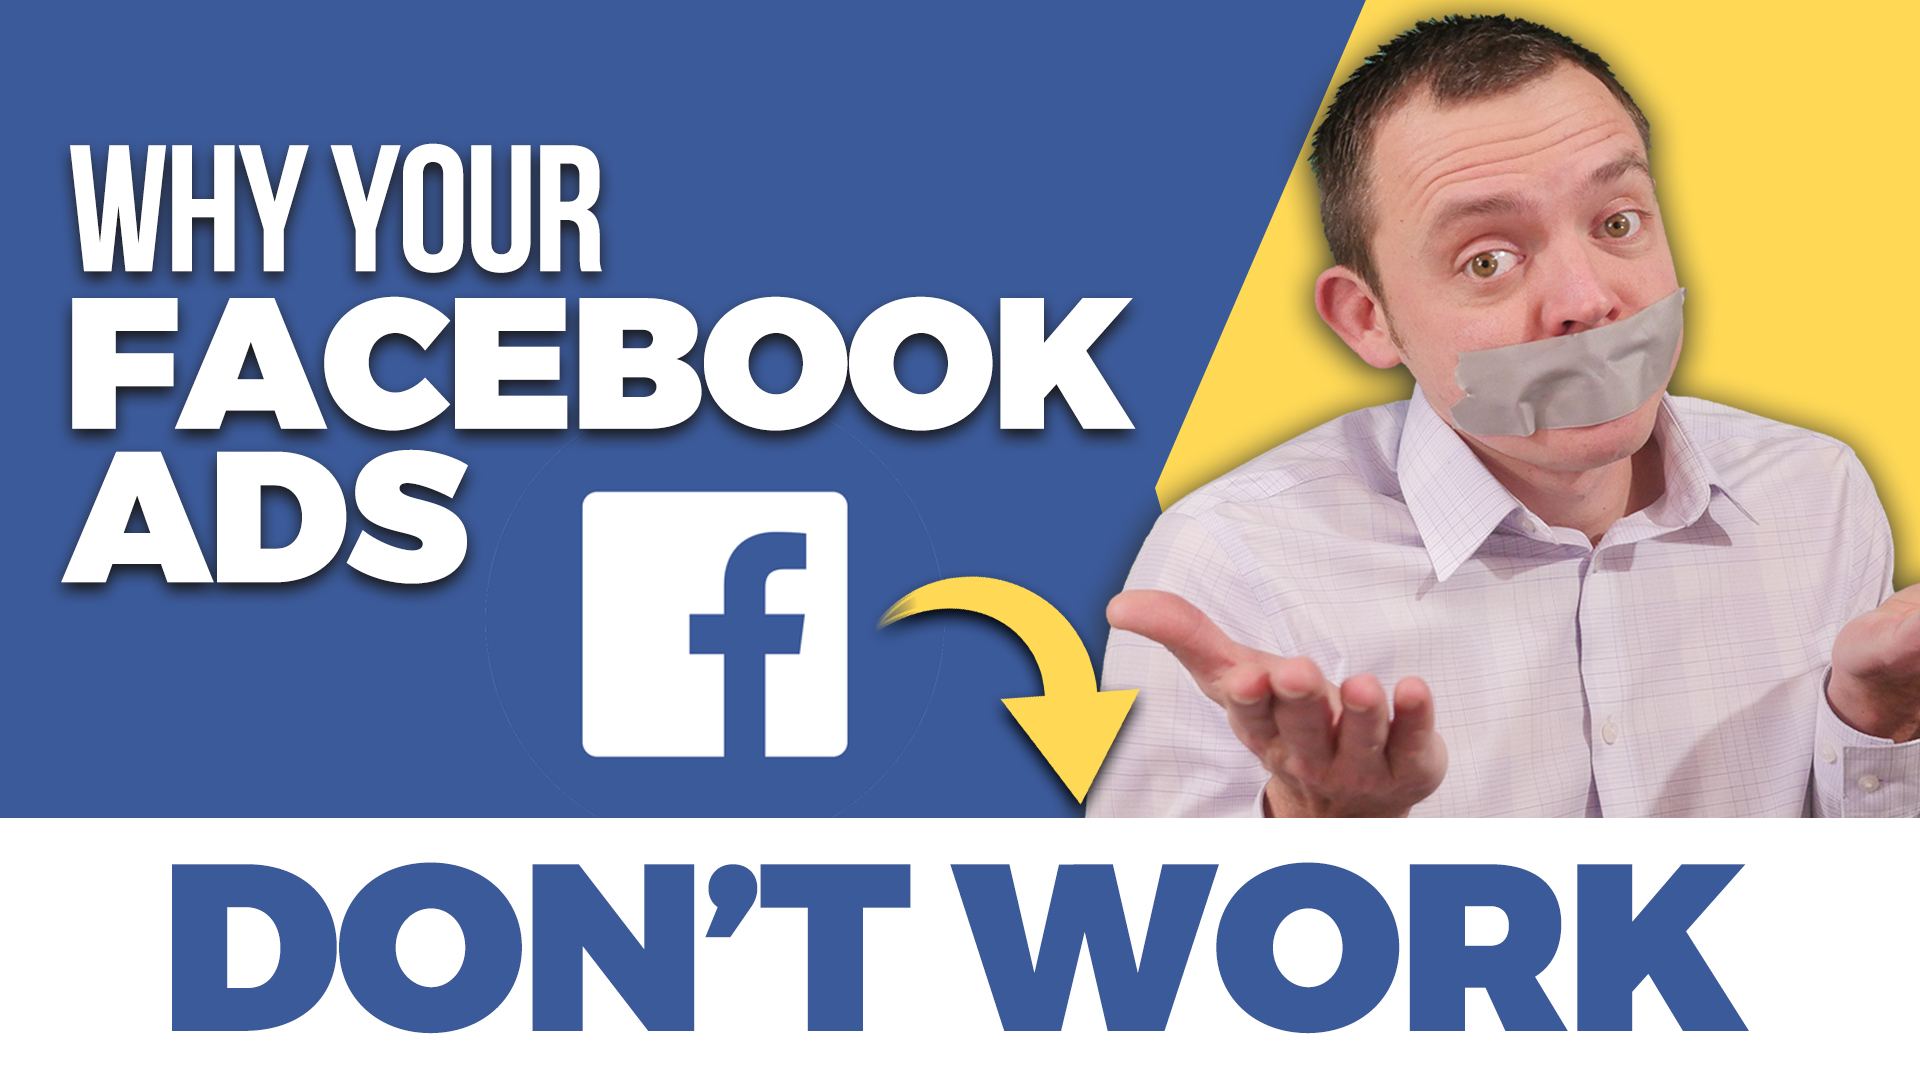 Why Your Facebook Ads Do NOT WORK!